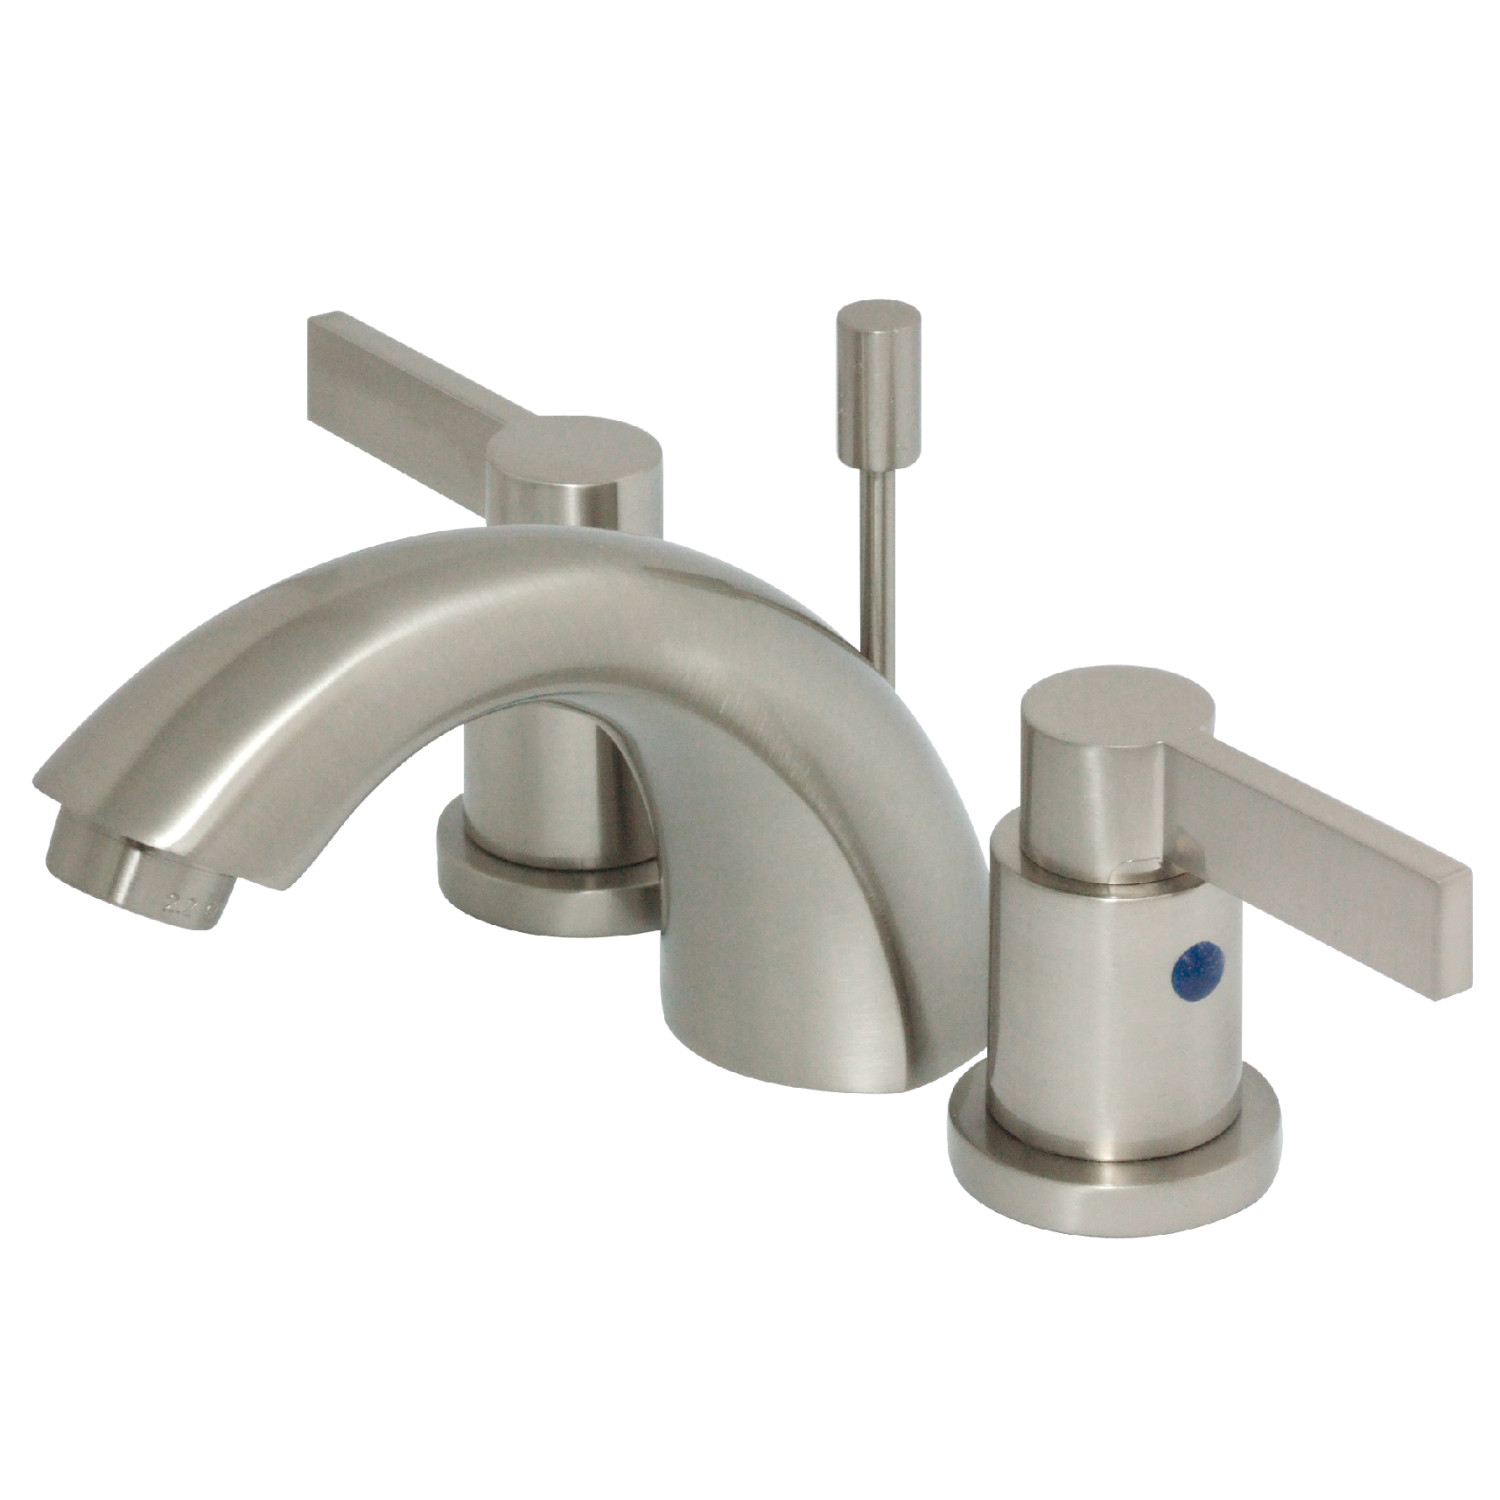 Brilliant Elements Of Design Eb8958Ndl Mini Widespread Lavatory Faucet Brushed Nickel Home Interior And Landscaping Transignezvosmurscom